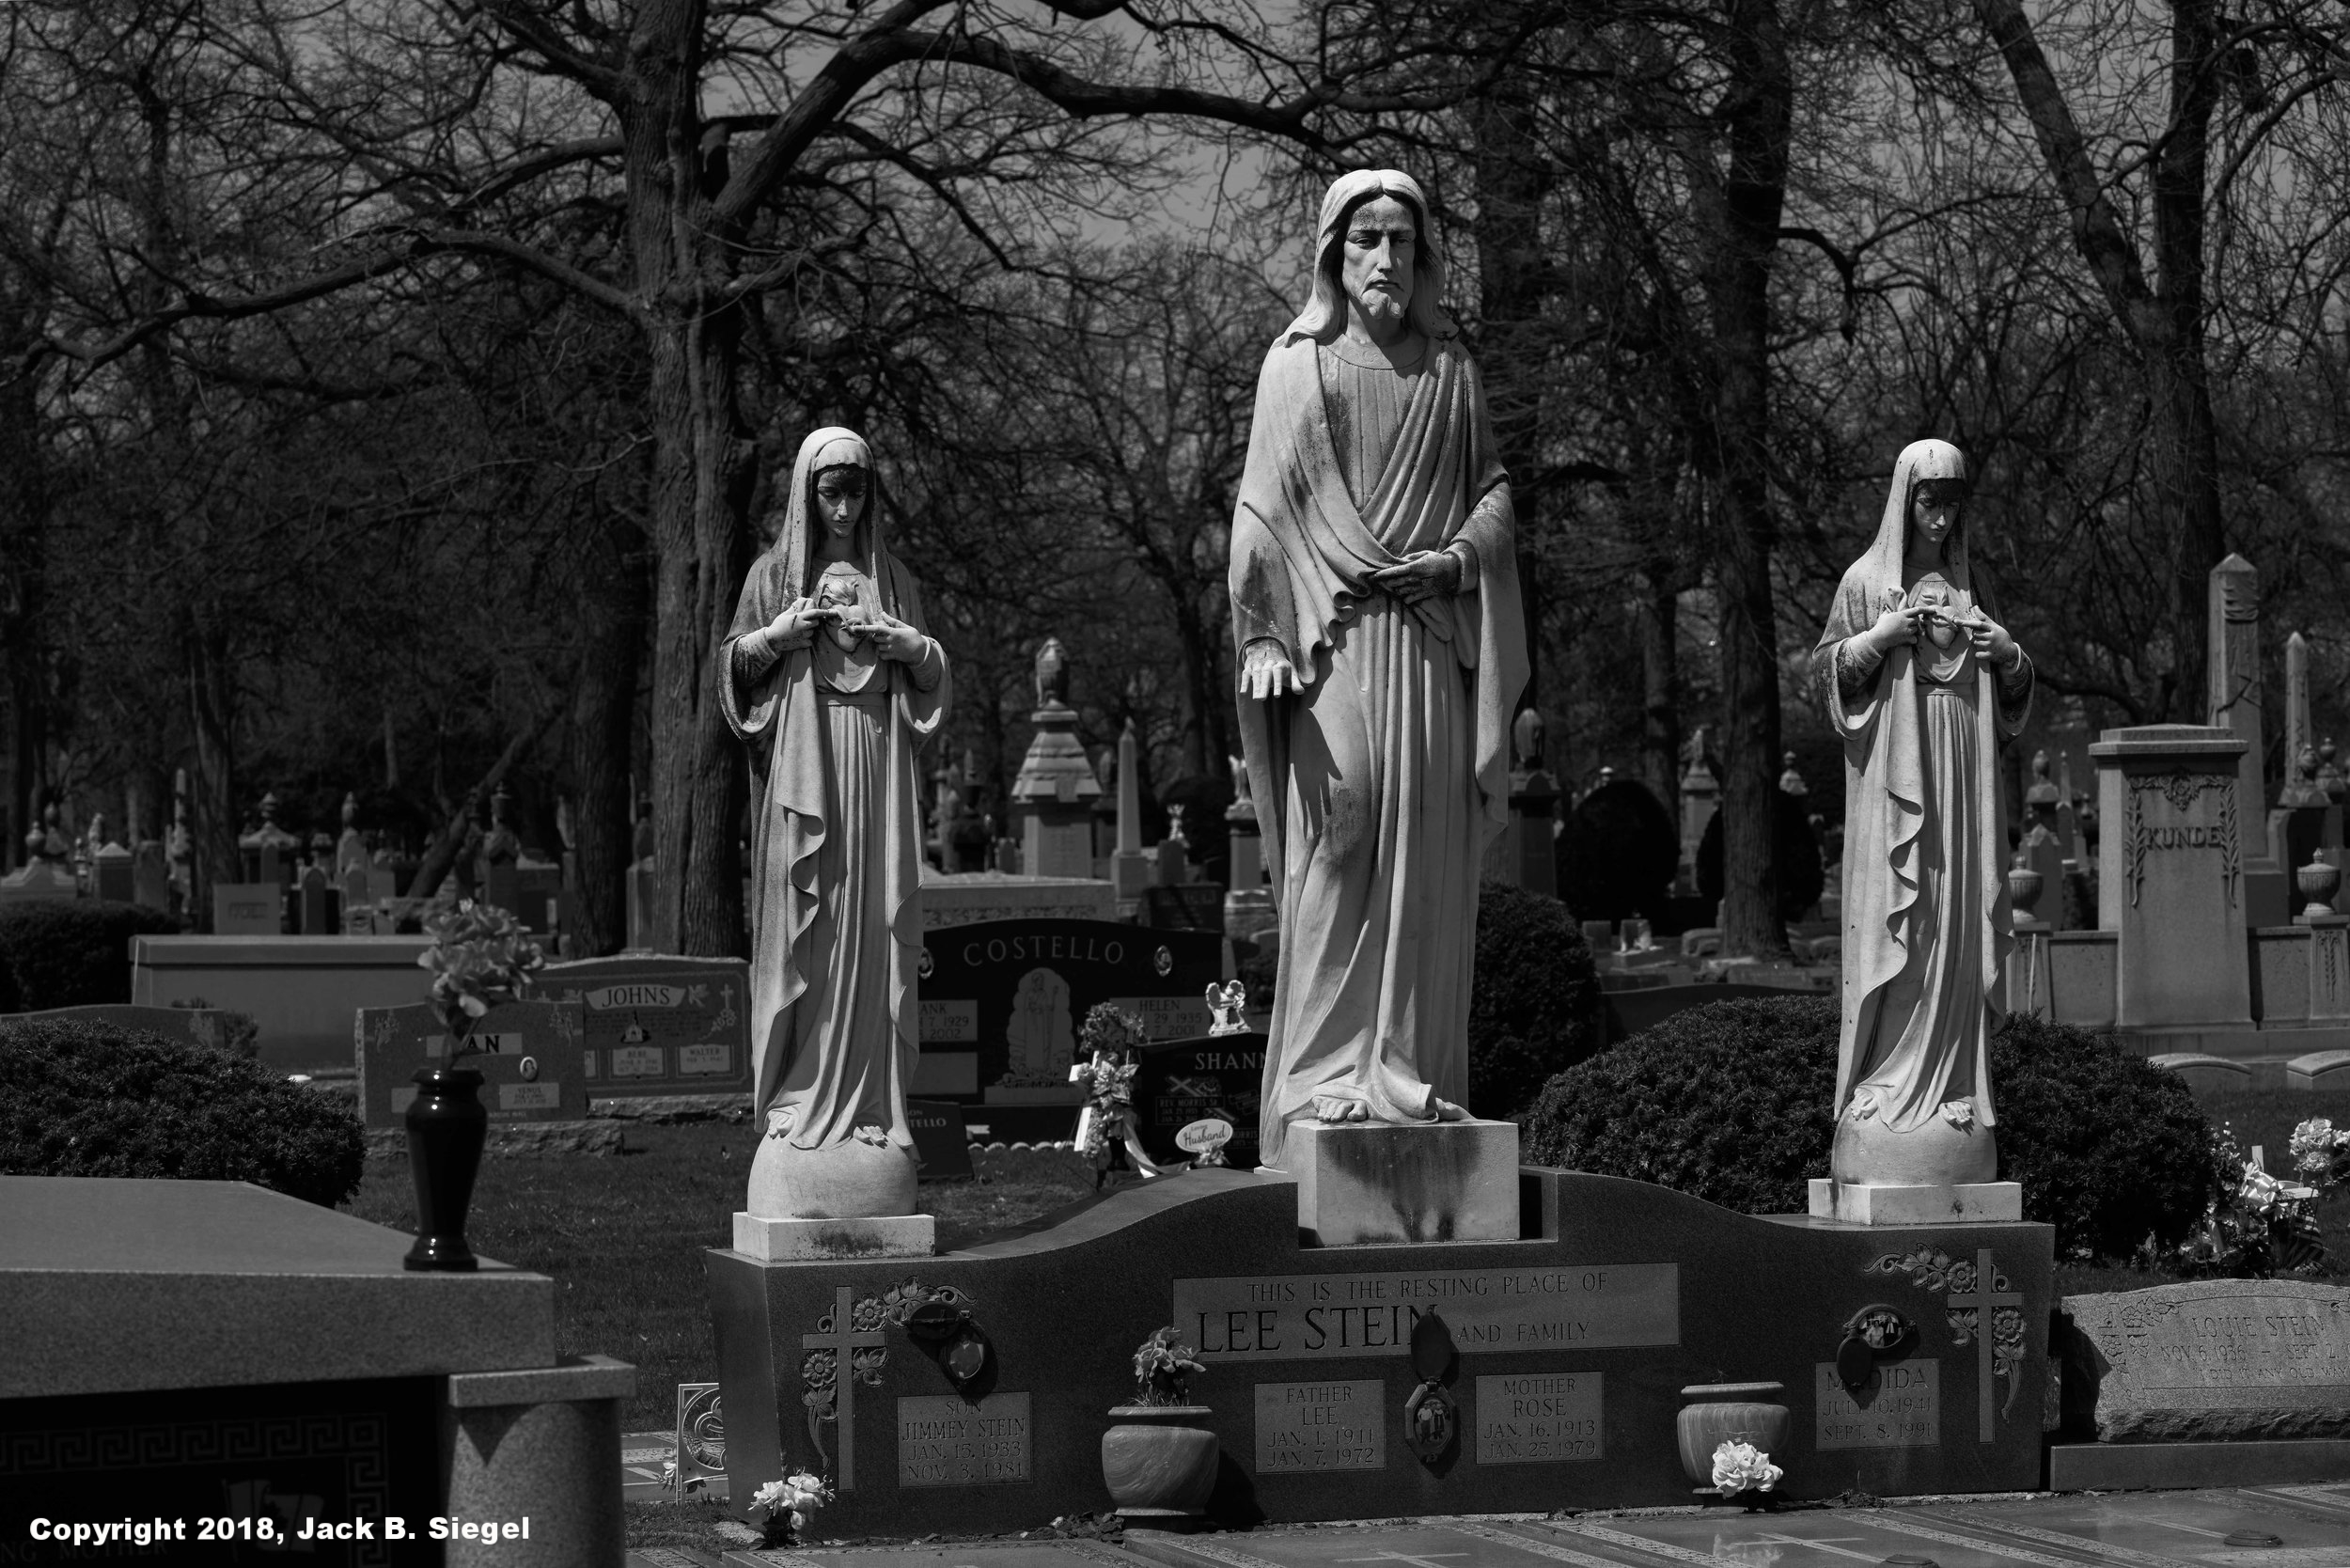 _DS21550-Edit-Edit_Copyright_sRGB_RelativveForest Home Cemetery- Jesus and His Helpers.jpg